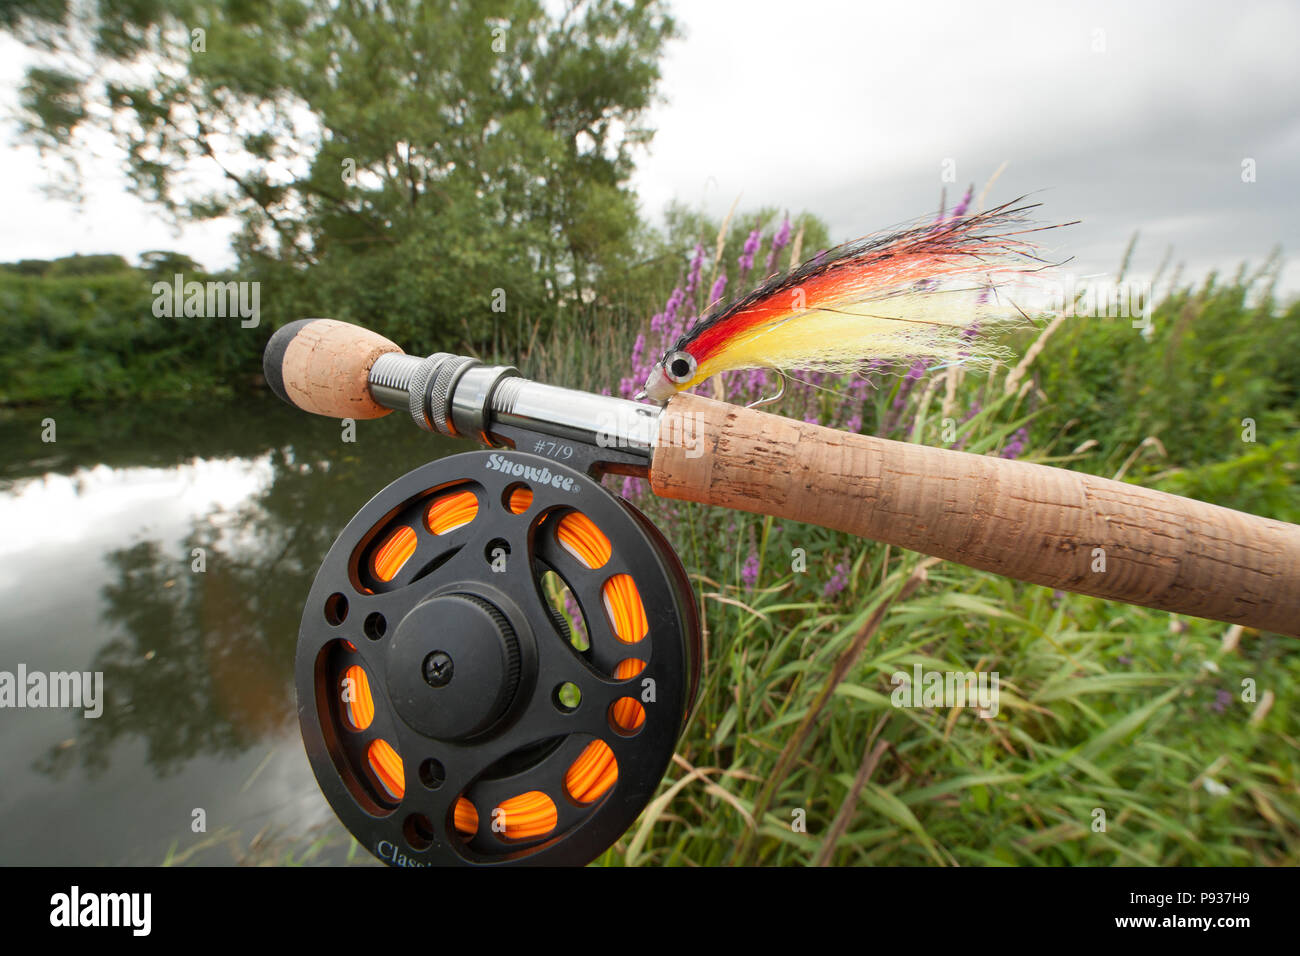 Fly for catching predatory fish, bought from a fishing tackle shop and in this case intended for pike fishing in rivers in the UK. Dorset England UK G - Stock Image